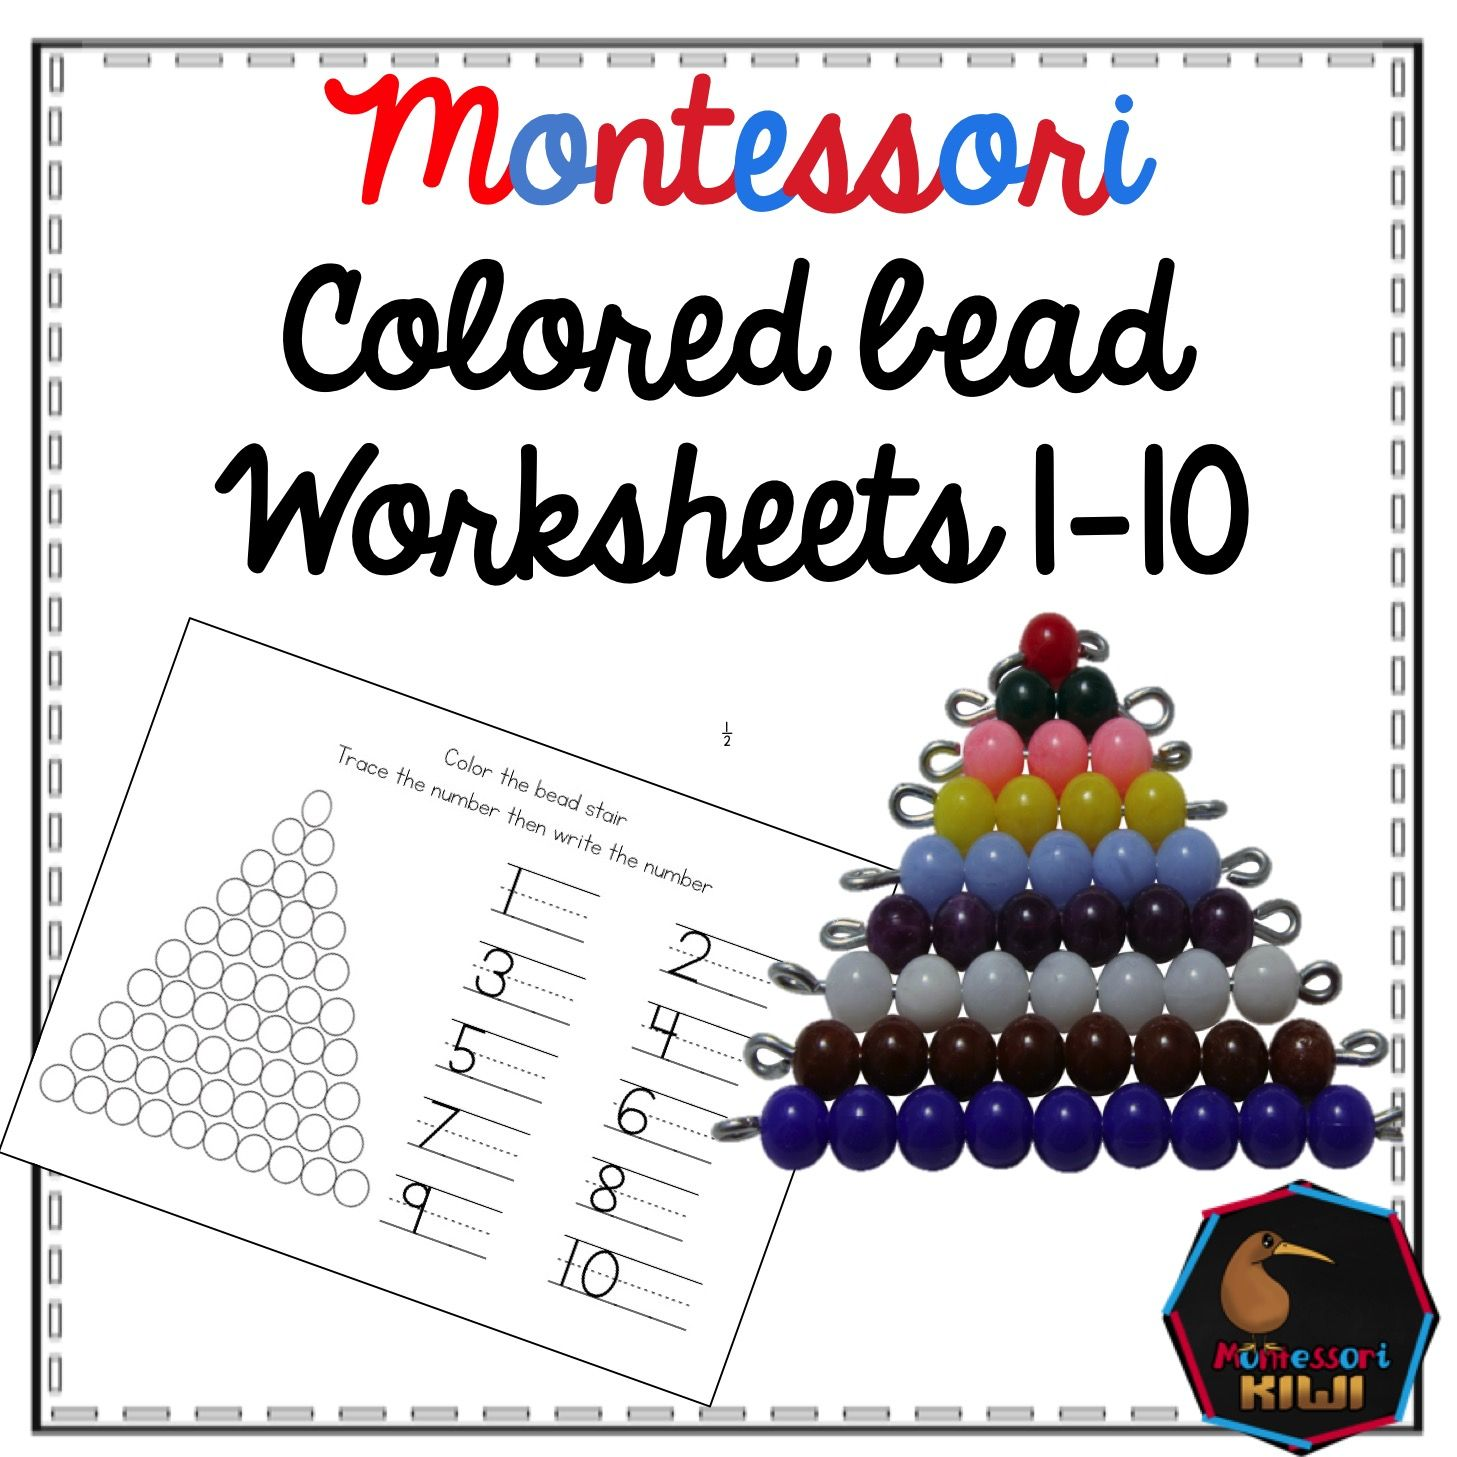 Colored Bead Stair Worksheets Montessori Inspired